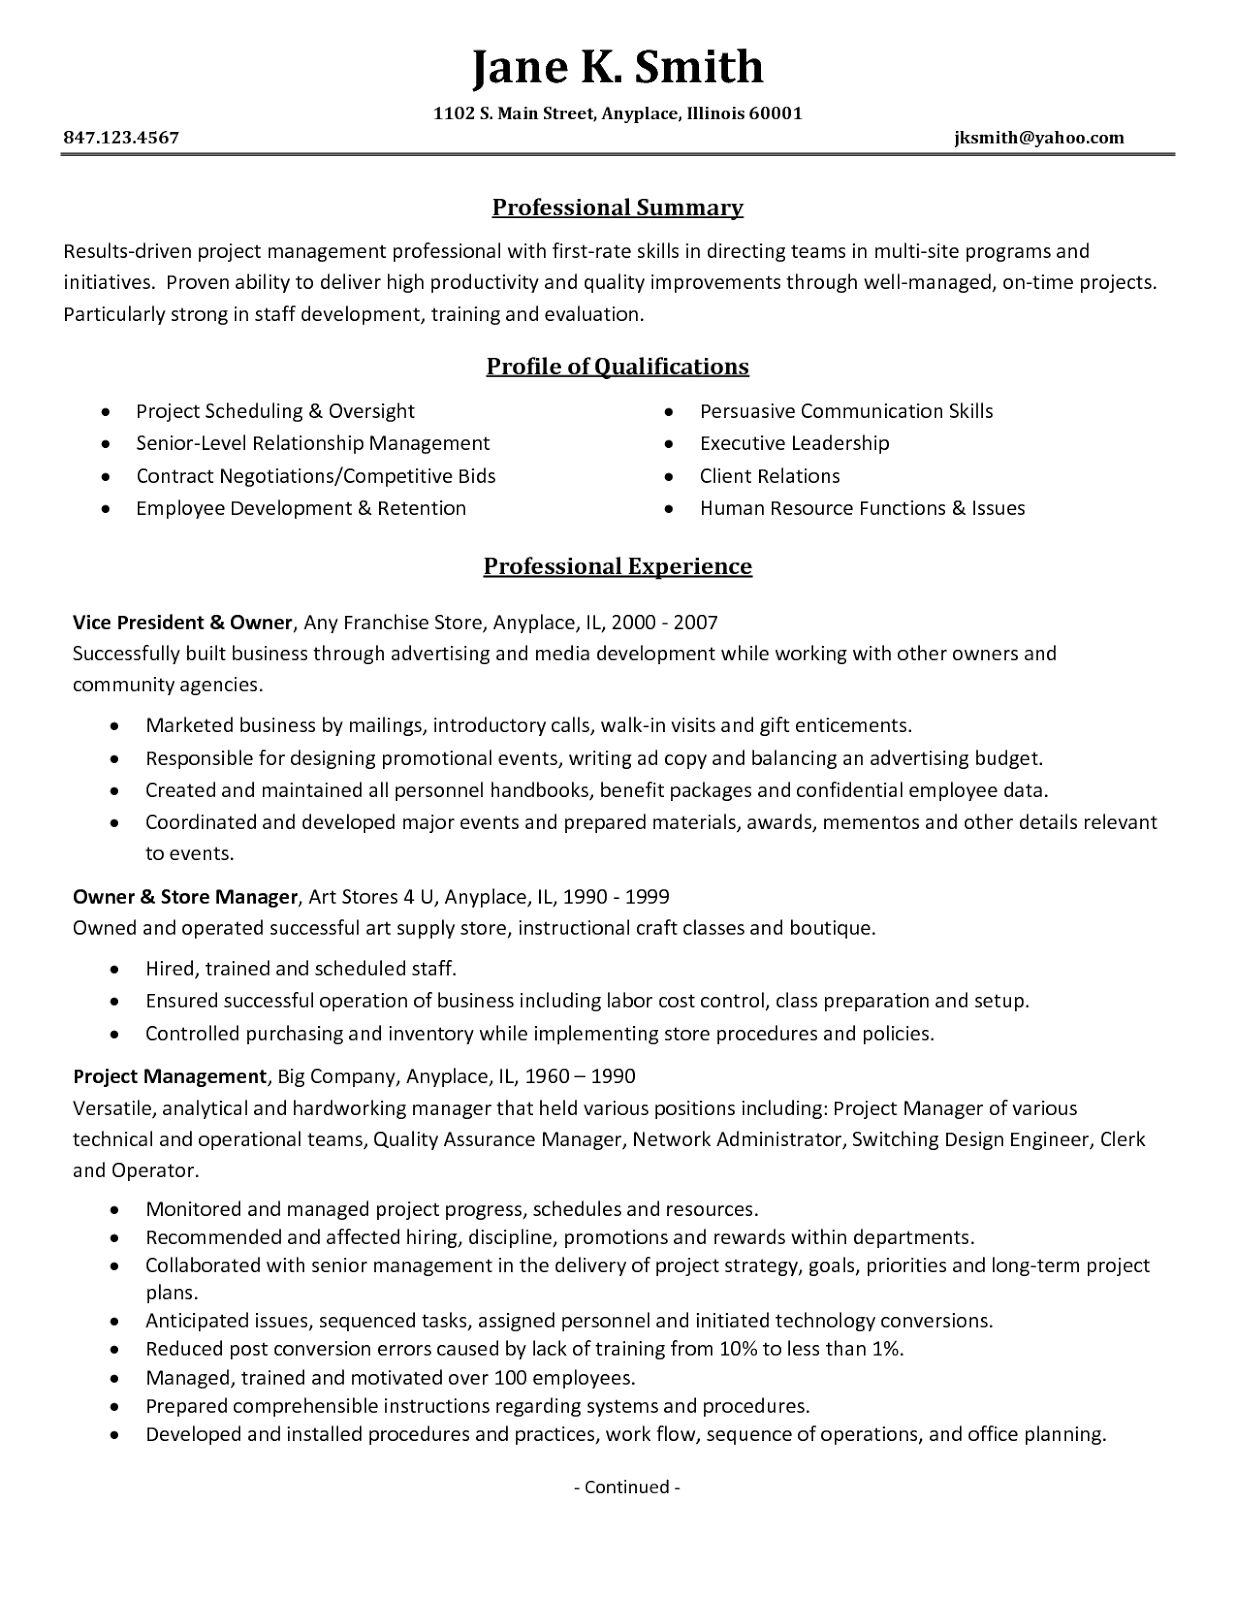 Design Engineer Cover Letter Image collections - Cover Letter Ideas